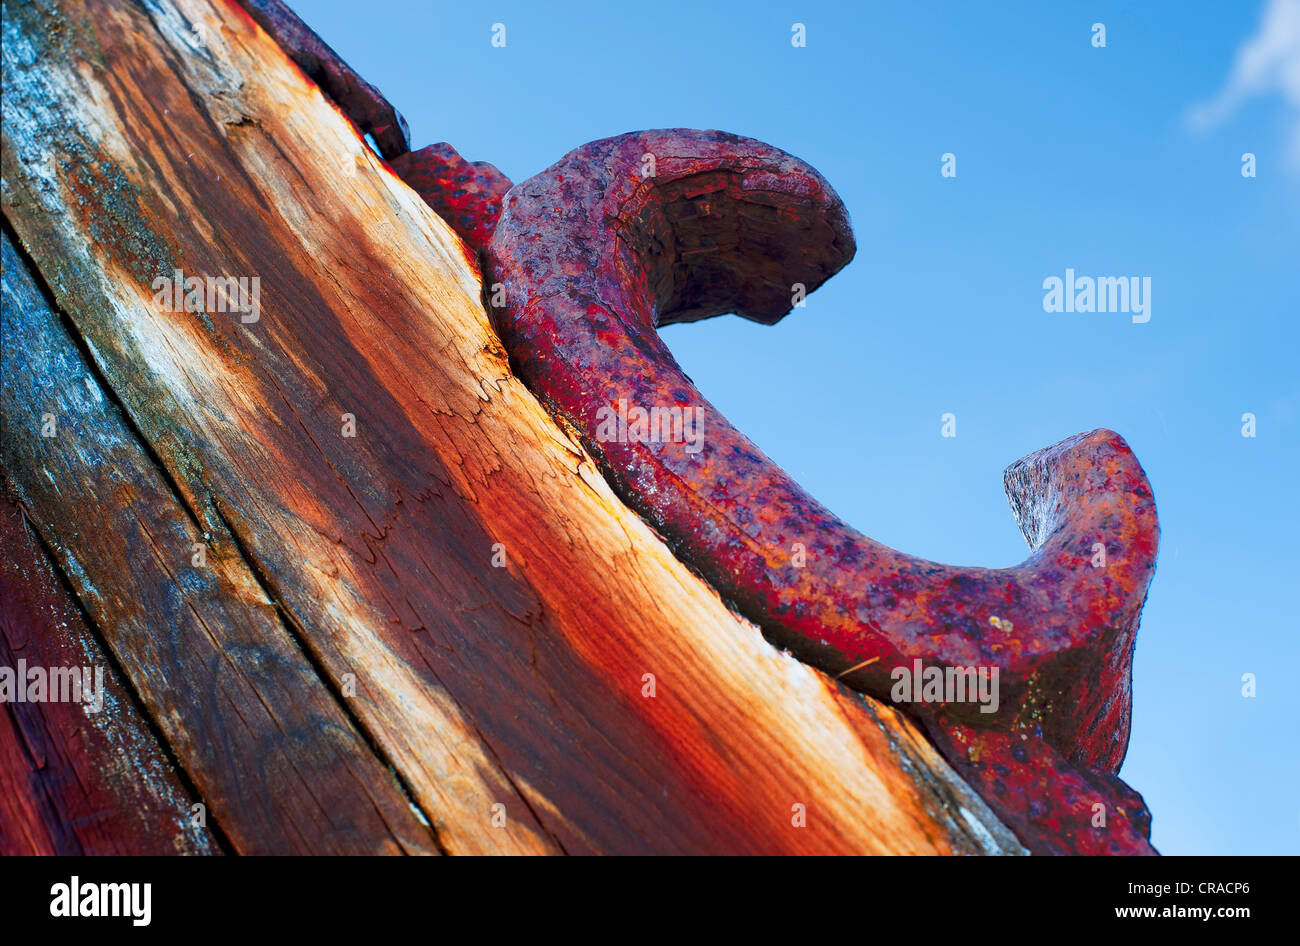 Corroded Iron oar holder on a ship wreck - Stock Image